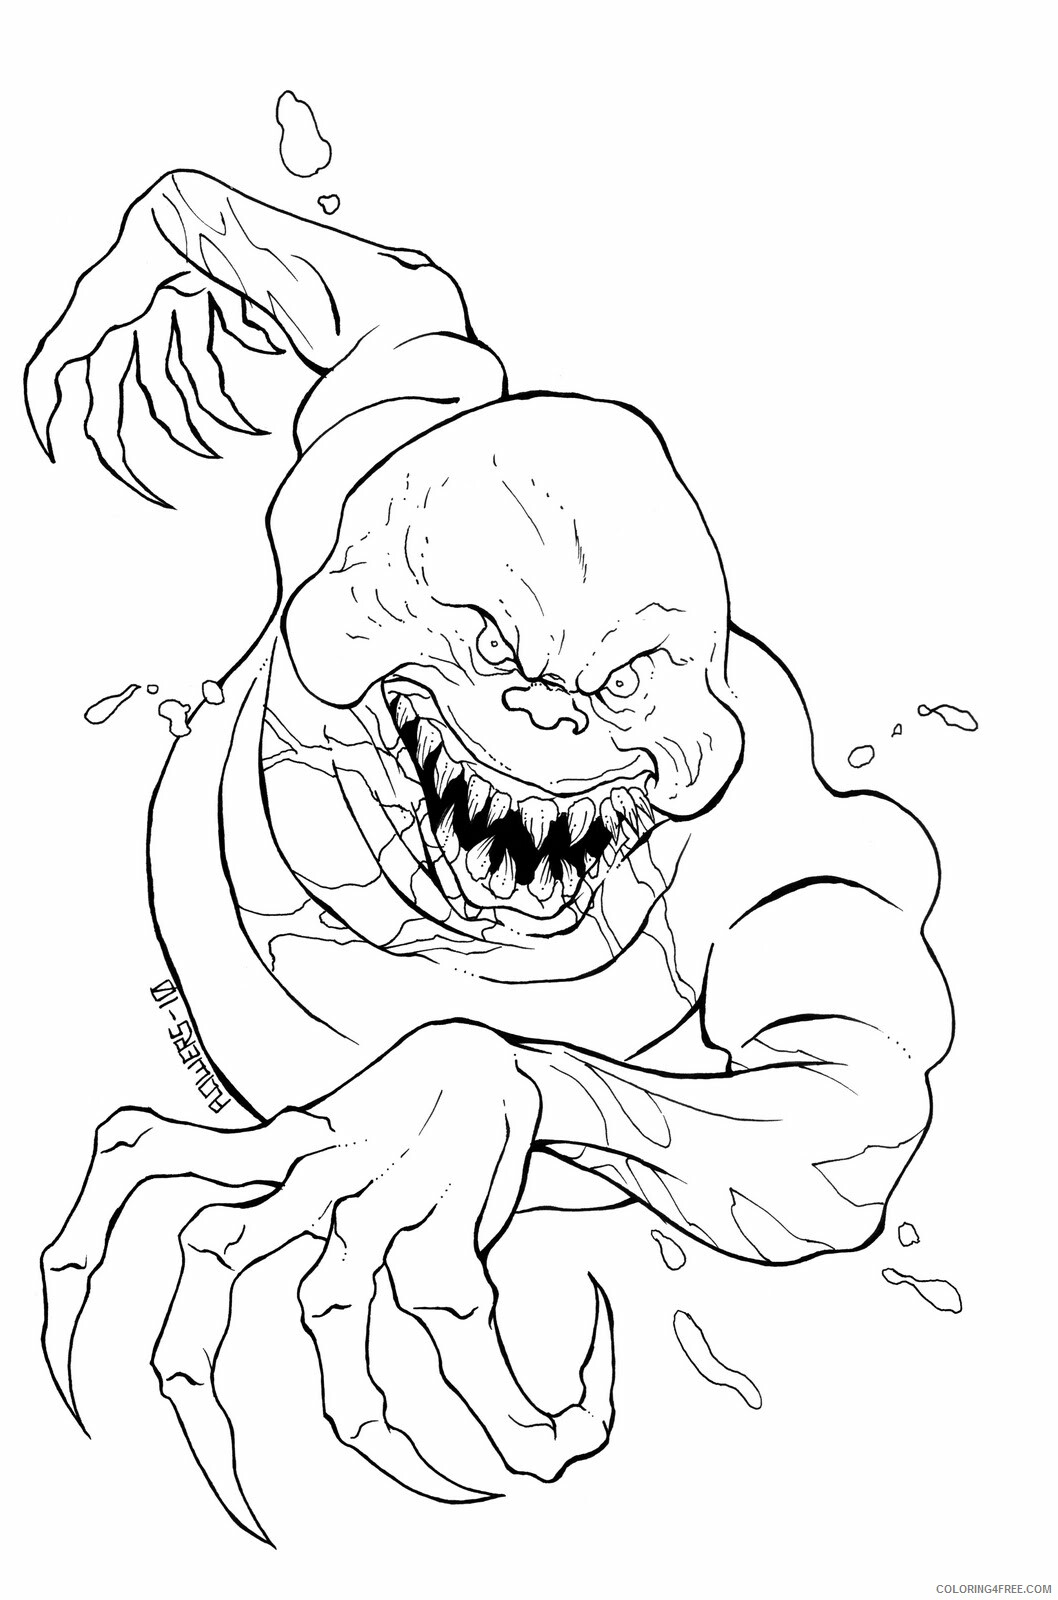 Ghost Coloring Pages Evil Ghost Scary Printable 2021 2806 Coloring4free